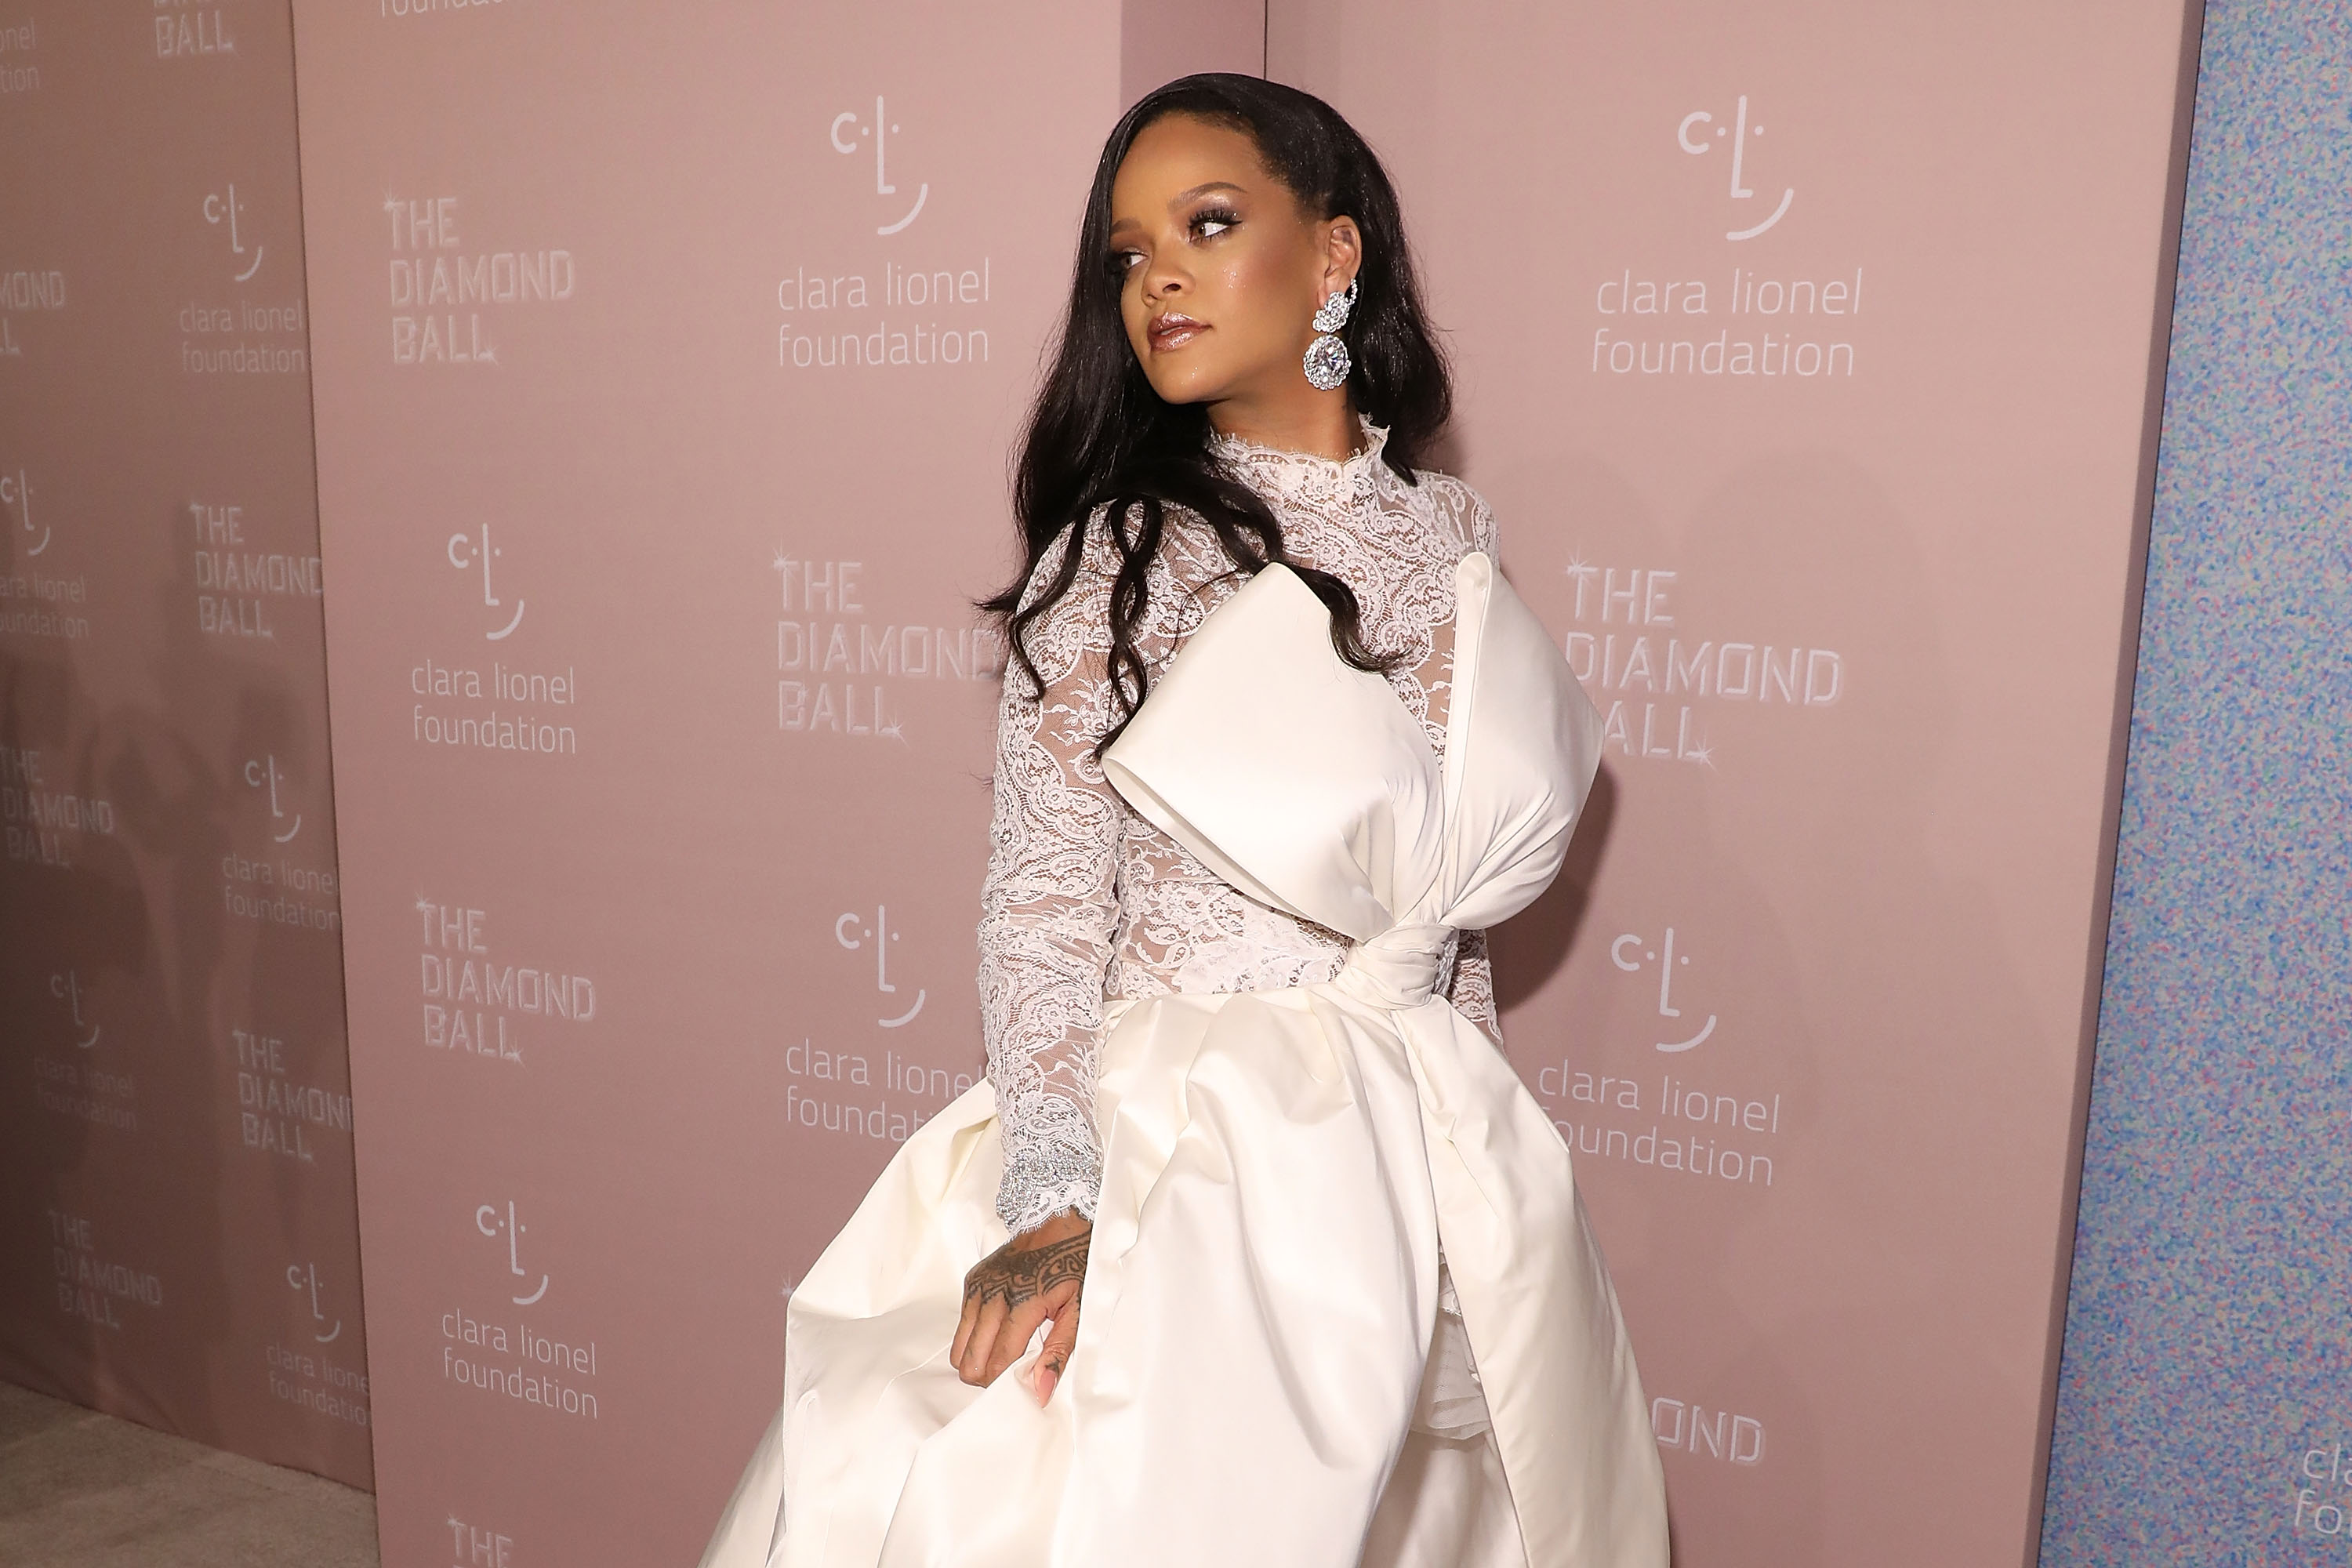 Rihanna attends the 2018 Diamond Ball at Cipriani Wall Street on September 13, 2018 in New York City.